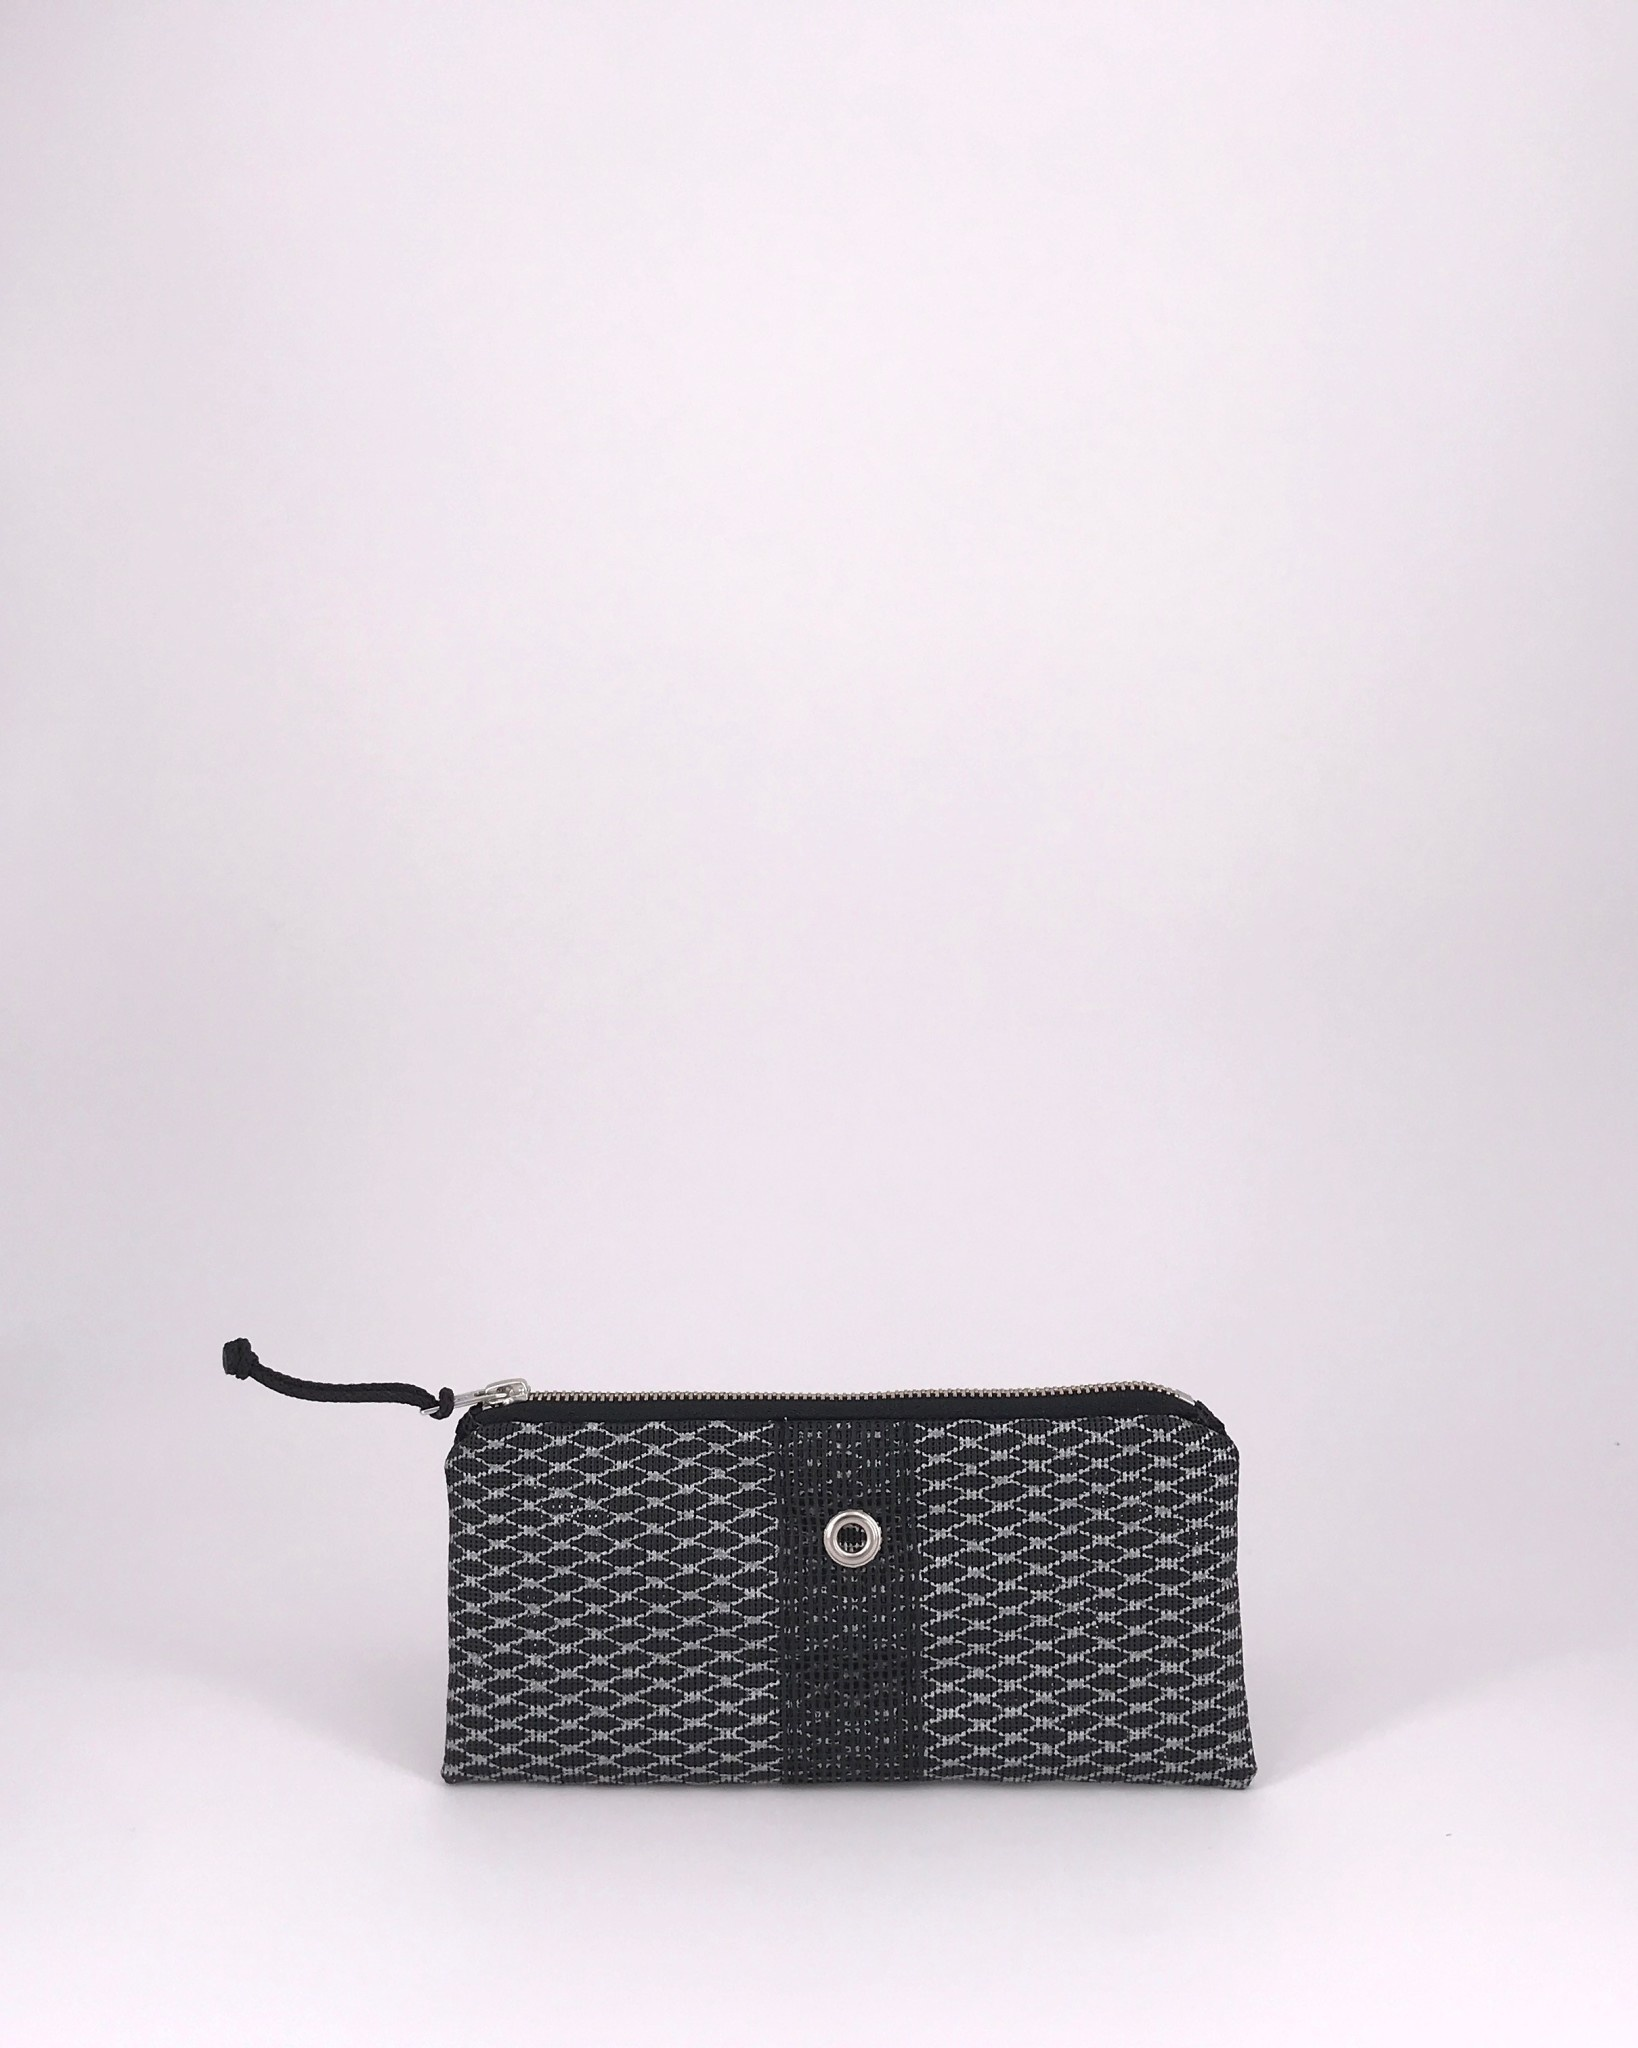 Alaina Marie ® Mini Silver Metallic on Black & Black Mini Clutch